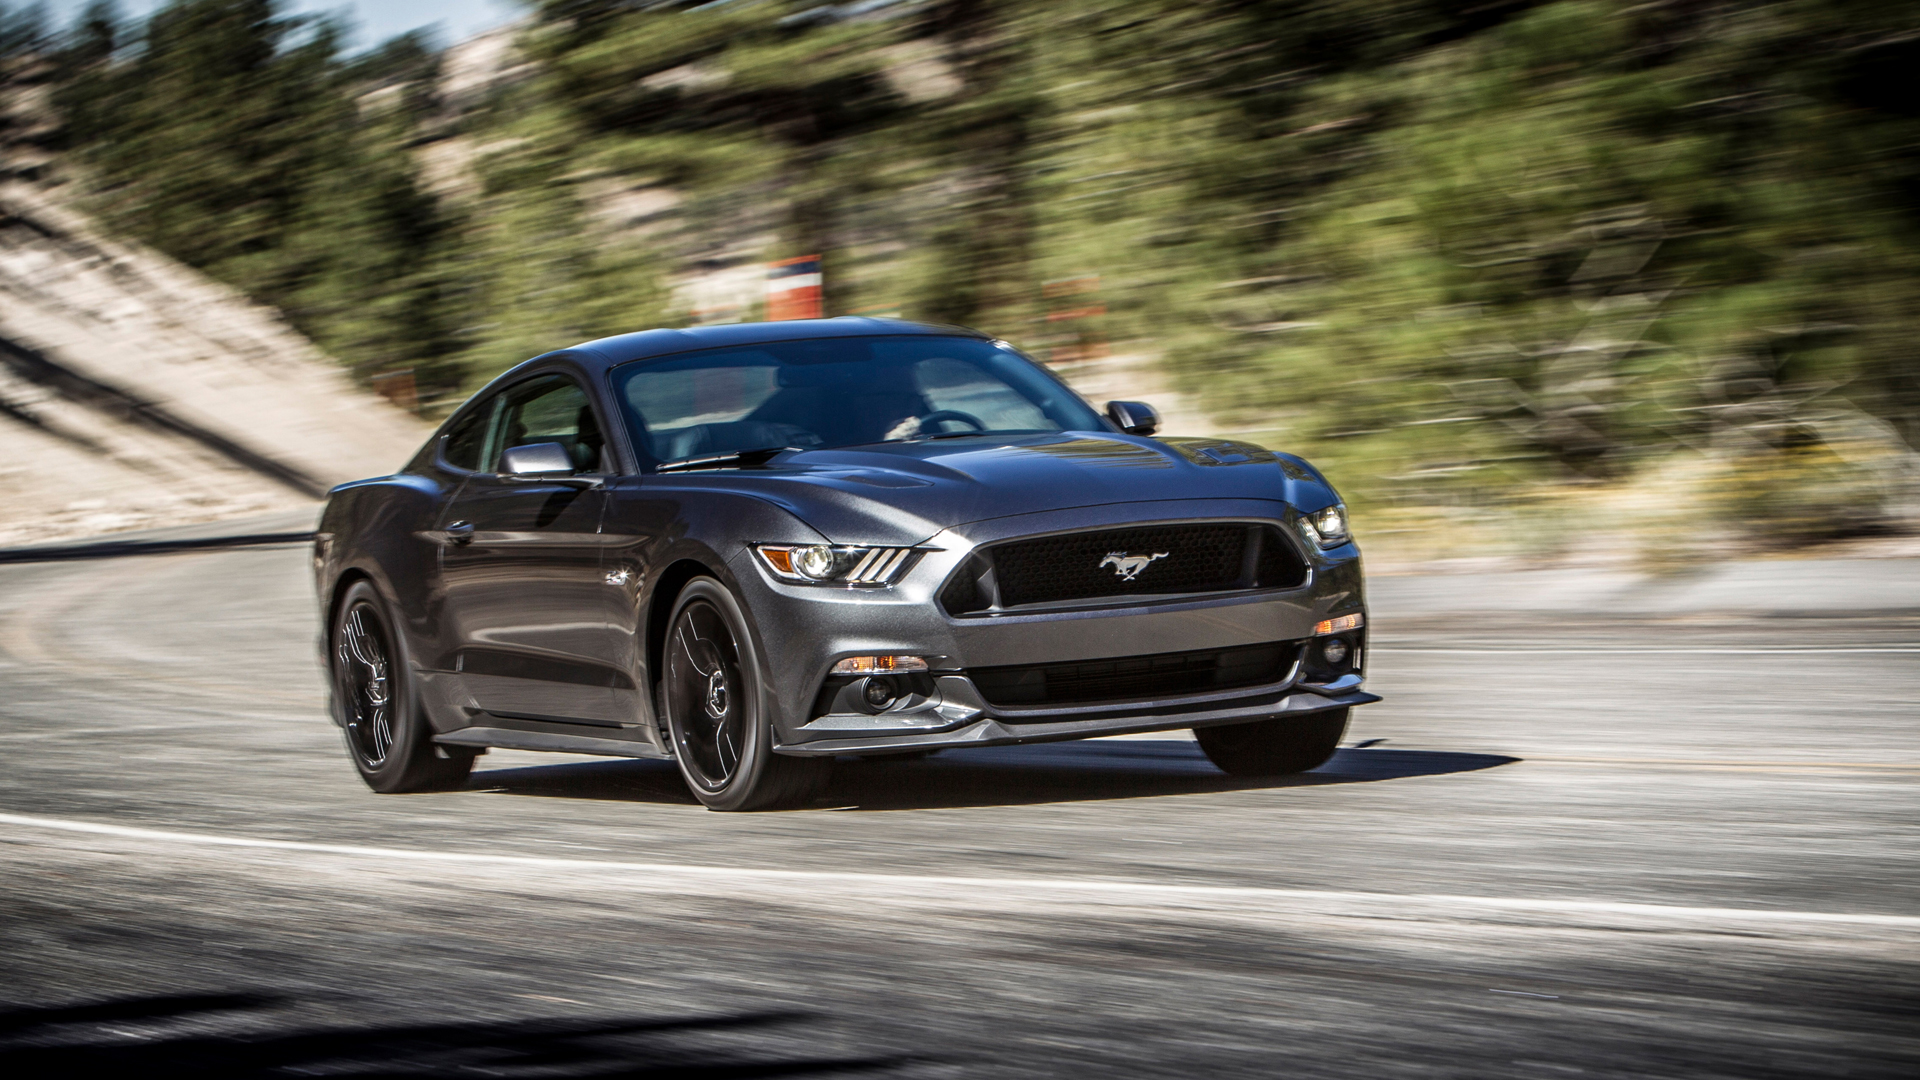 Mustang GT 2015 Wallpapers Ford Mustang GT 2015 Photos Ford Mustang GT 1920x1080